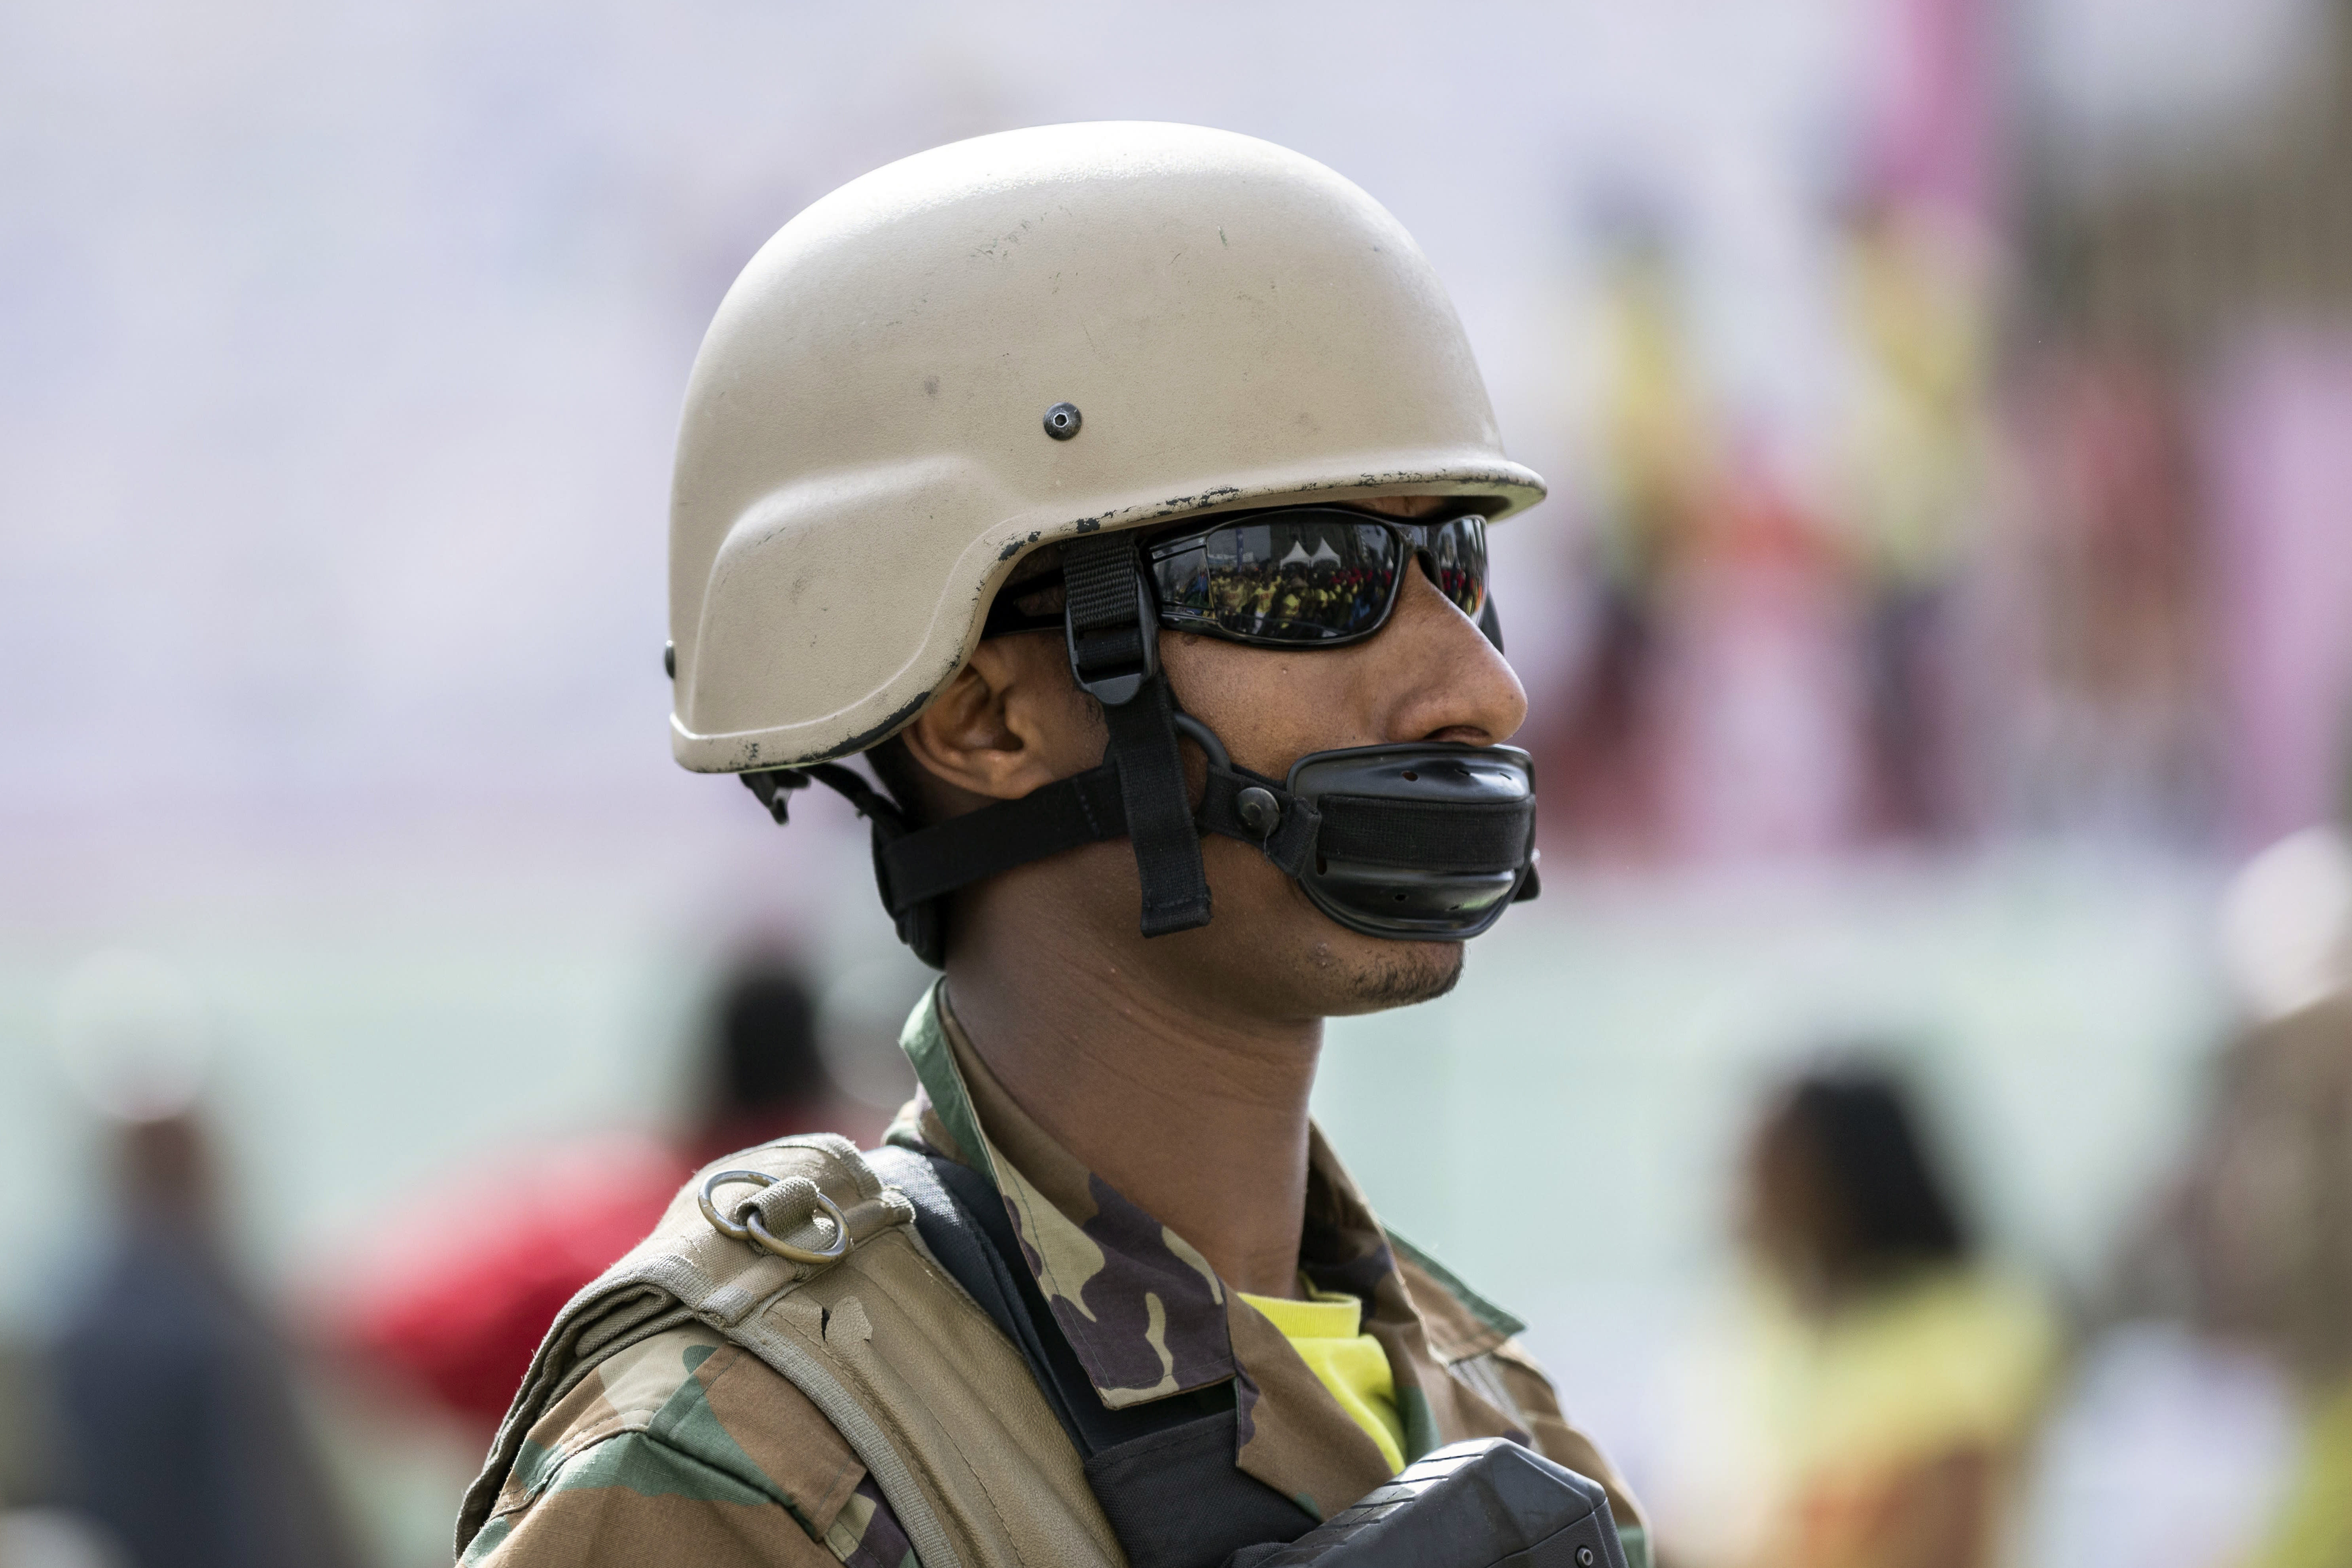 An Ethiopian soldier providing security during a visit by the president to a women's 5km fun run wears his chinstrap as a makeshift face mask to protect against the new coronavirus, in the capital Addis Ababa, Ethiopia Sunday, March 15, 2020. Ethiopia reported on Thursday its first case of the new coronavirus which causes COVID-19. For most people, the new coronavirus causes only mild or moderate symptoms, such as fever and cough but for some, especially older adults and people with existing health problems, it can cause more severe illness, including pneumonia. (AP Photo/Mulugeta Ayene)